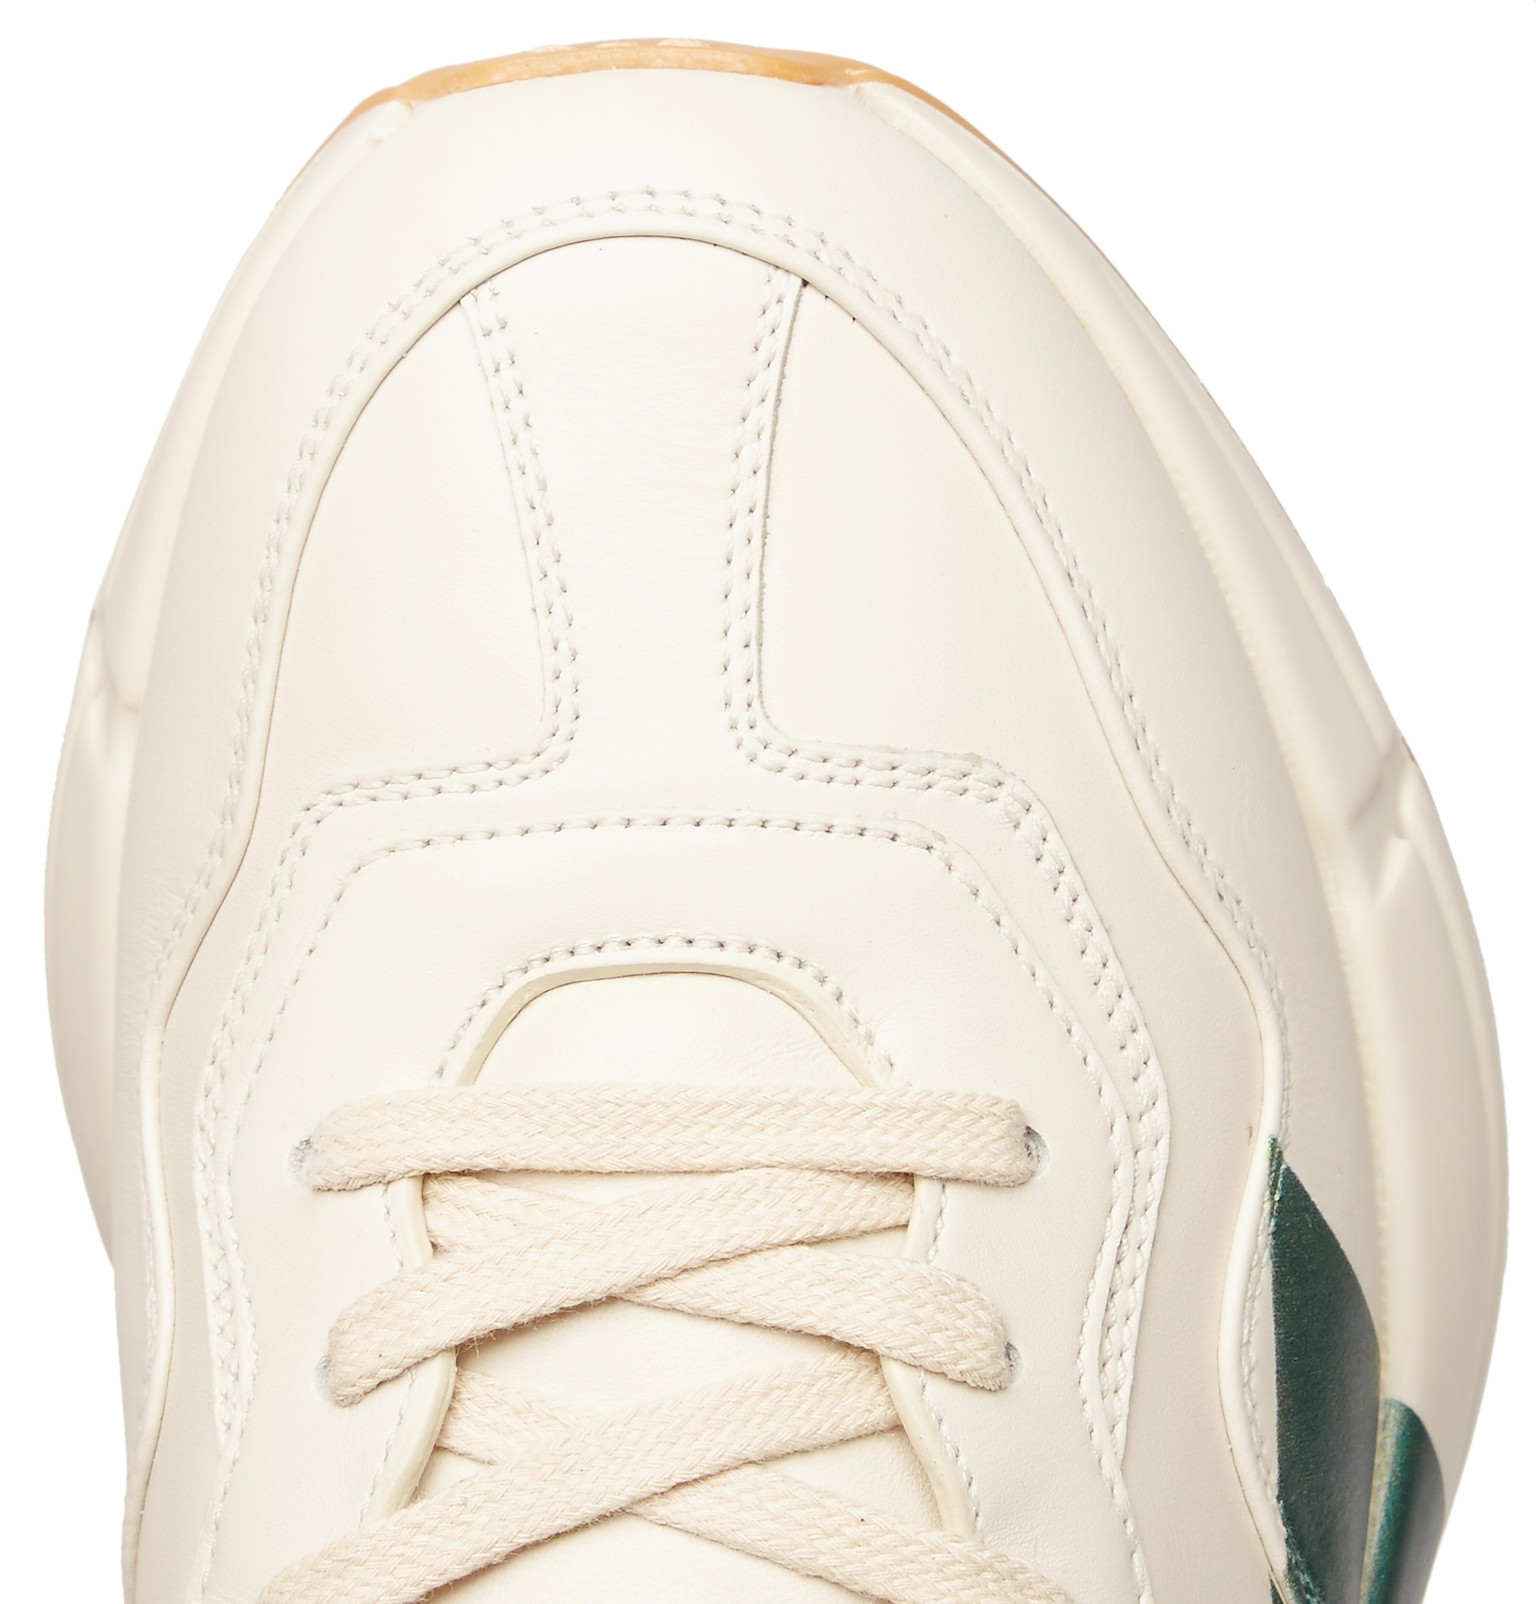 Gucci - Rhyton Striped Leather Sneakers b1be333769322